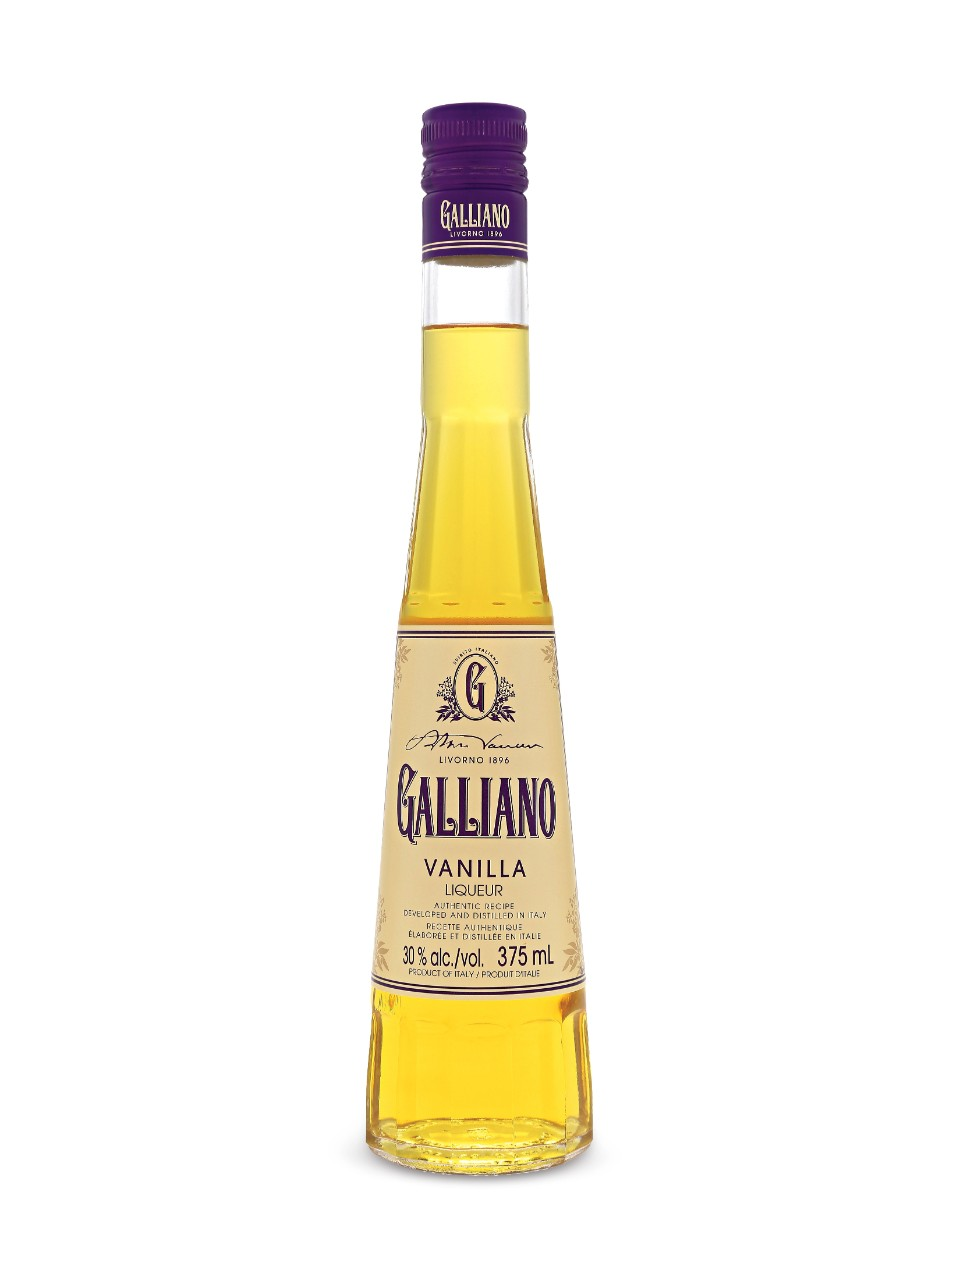 Galliano from LCBO